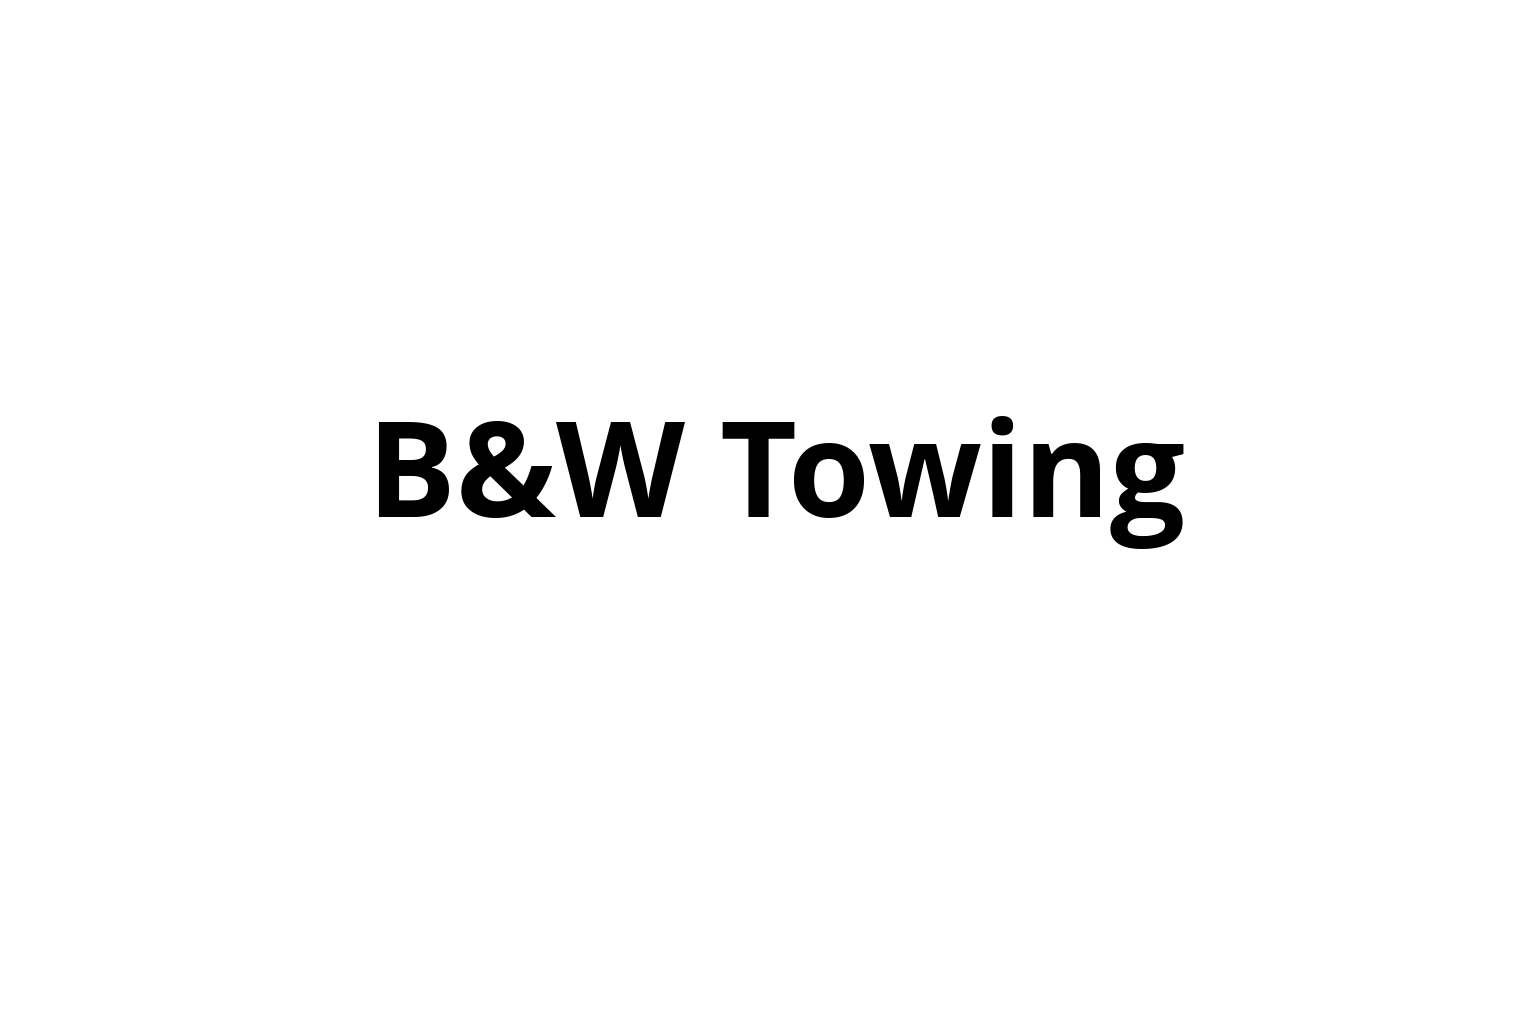 B&W Towing